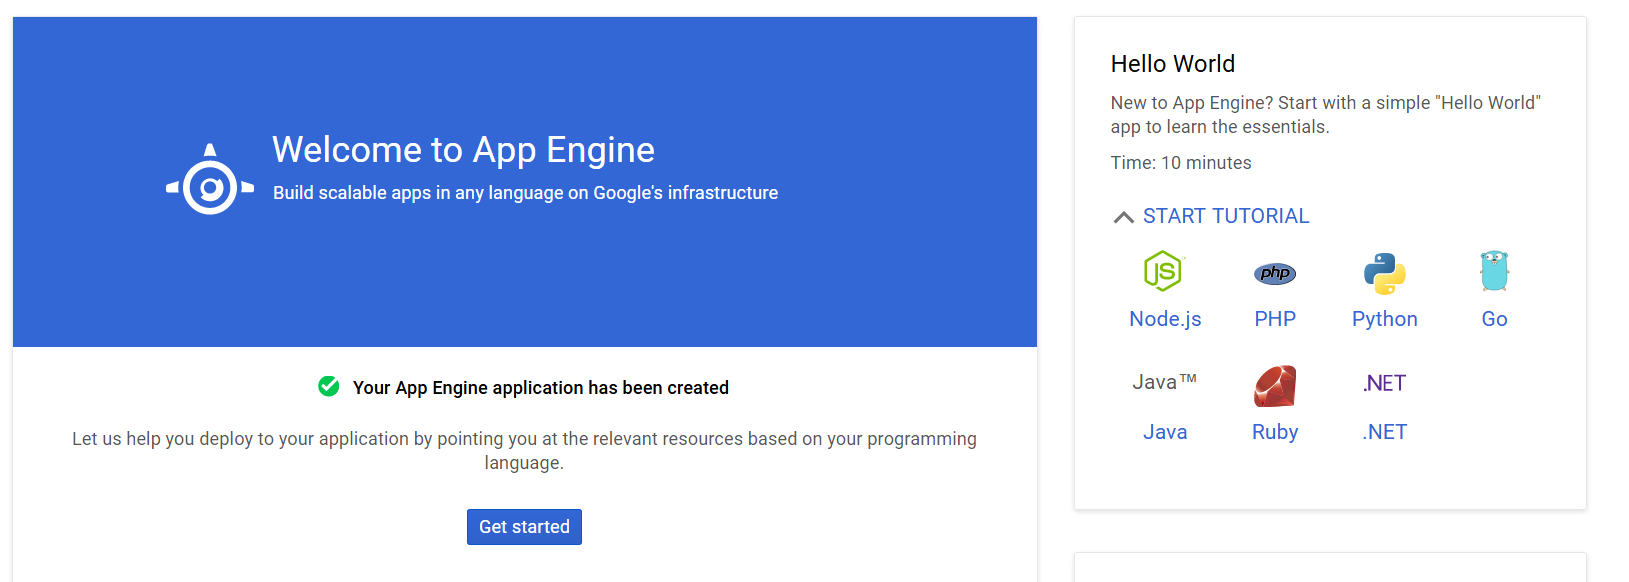 Google App Engine - Quickstart guide page